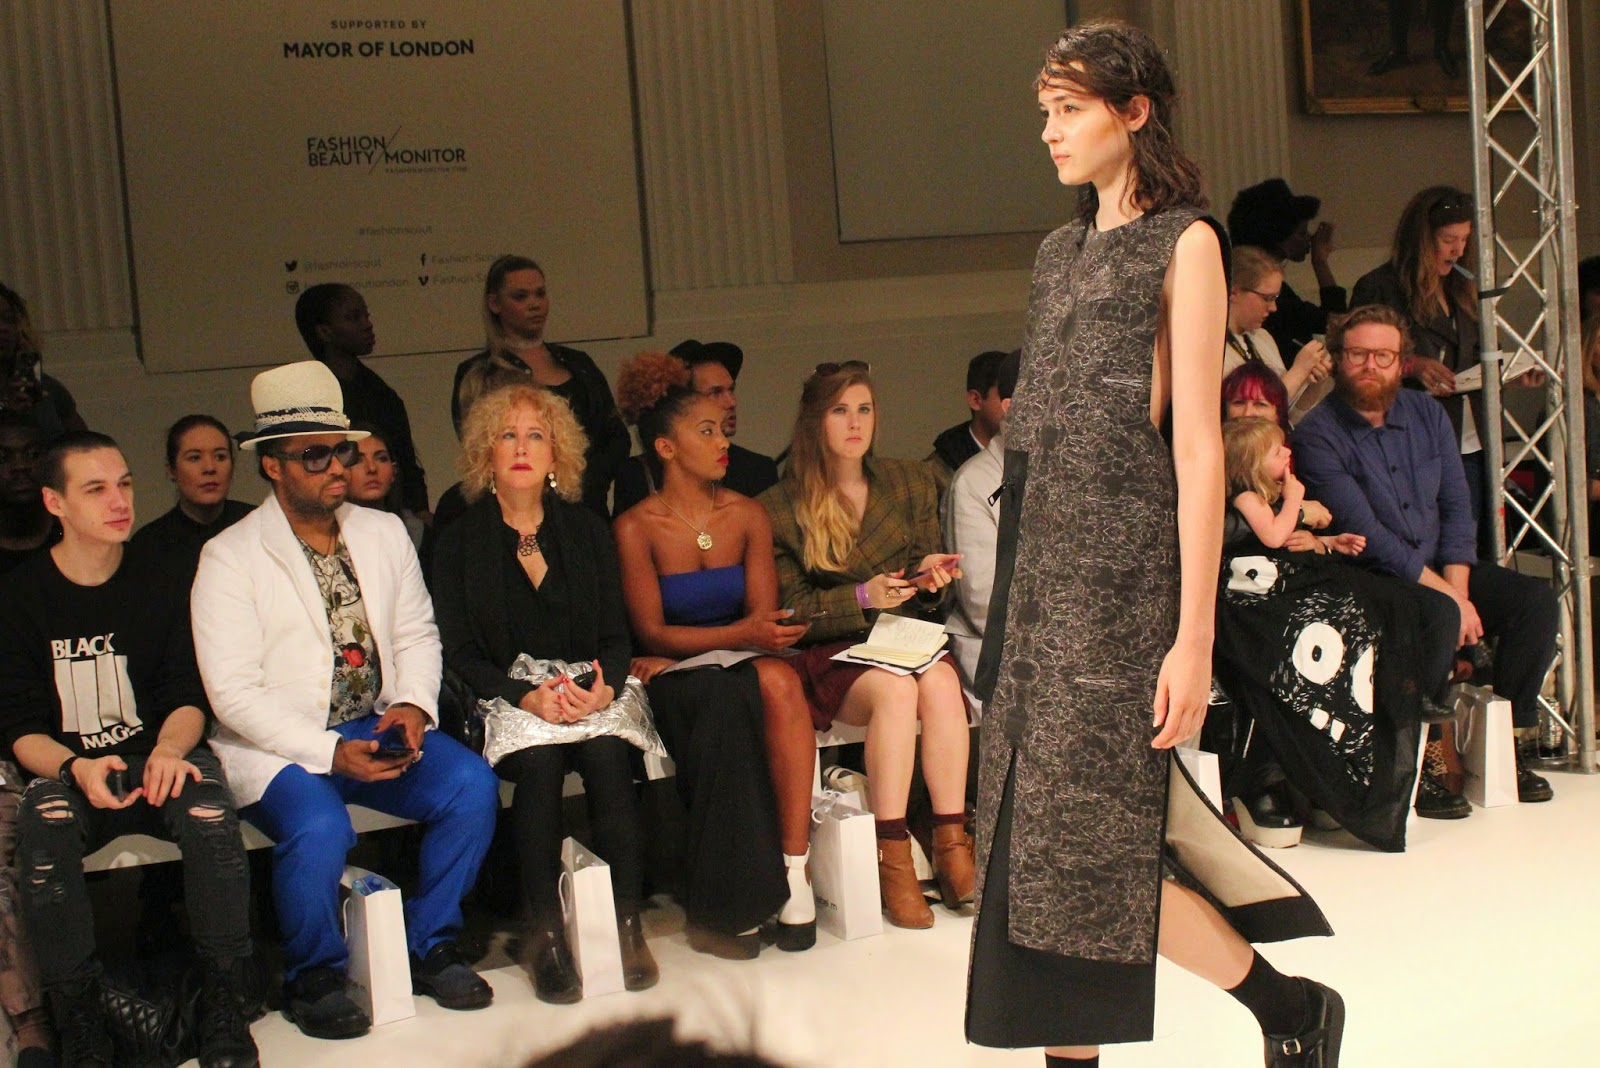 london-fashion-week-2014-lfw-spring-summer-2015-blogger-fashion-Dioralop-catwalk-models-freemasons hall-fashion-scout-dress-shoes